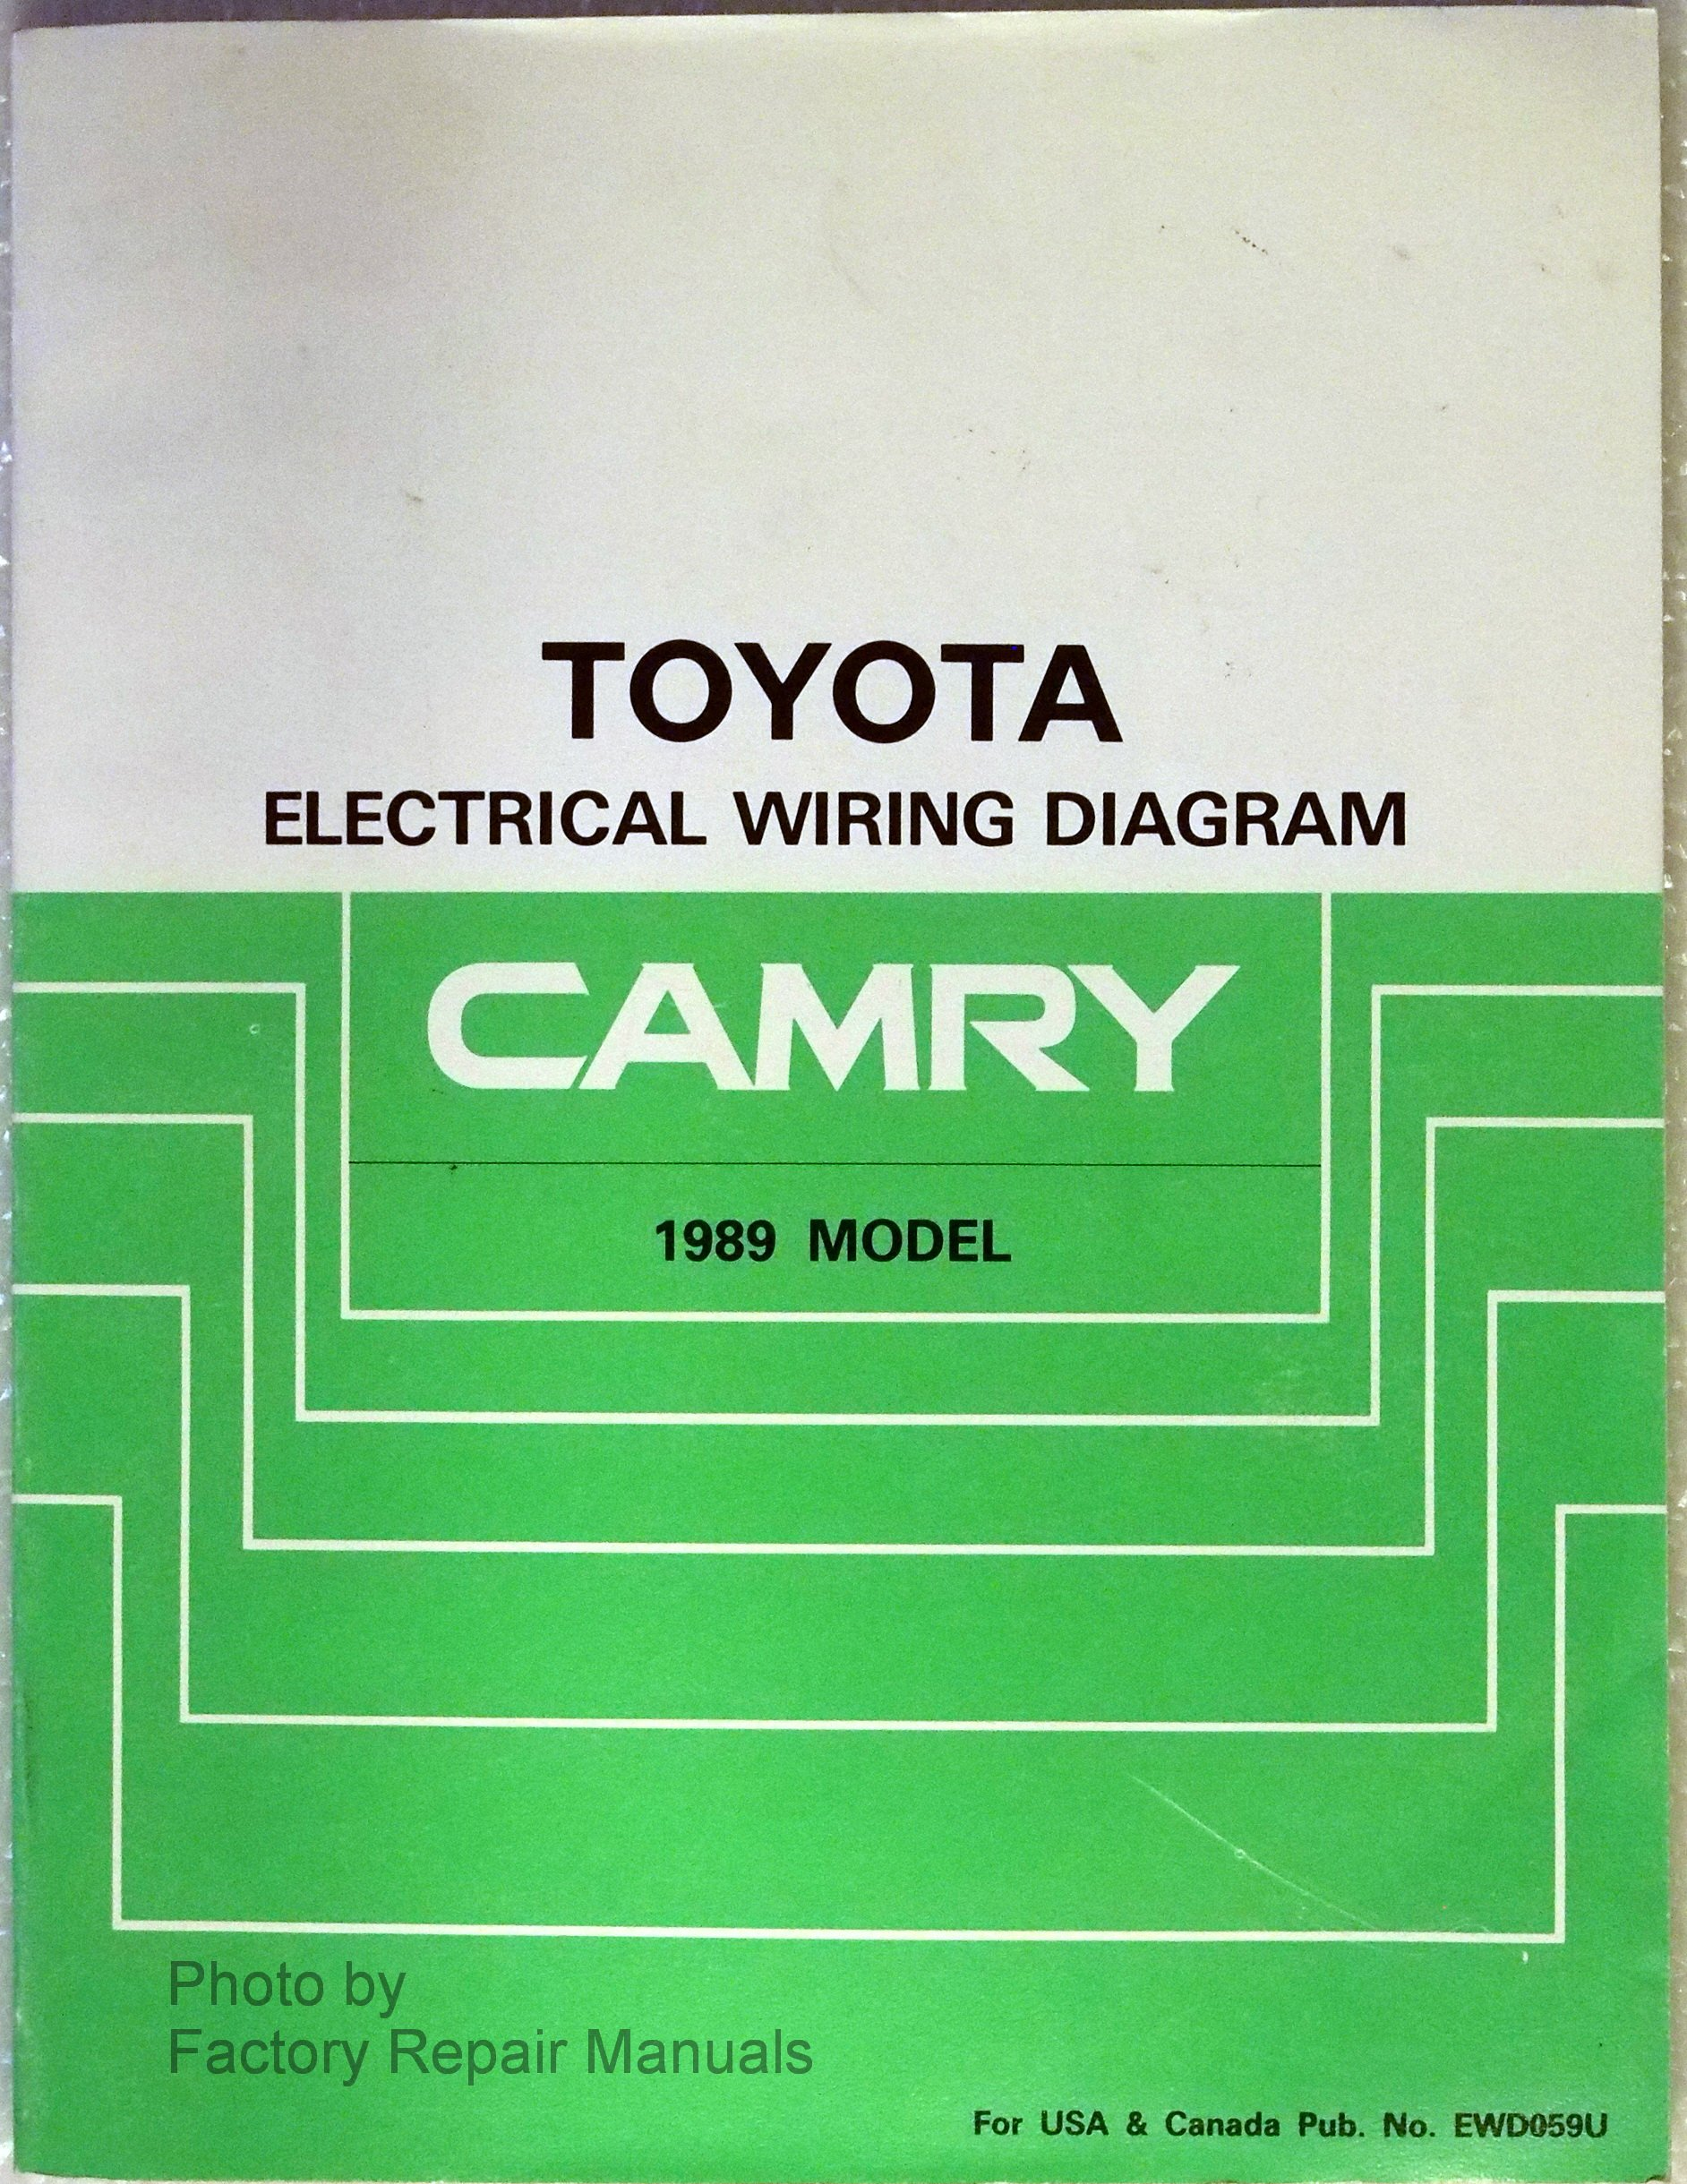 1988 Toyota Camry Wiring Diagrams Archive Of Automotive 88 Radio Harness 1989 Electrical Diagram Manual Rh Amazon Com 1990